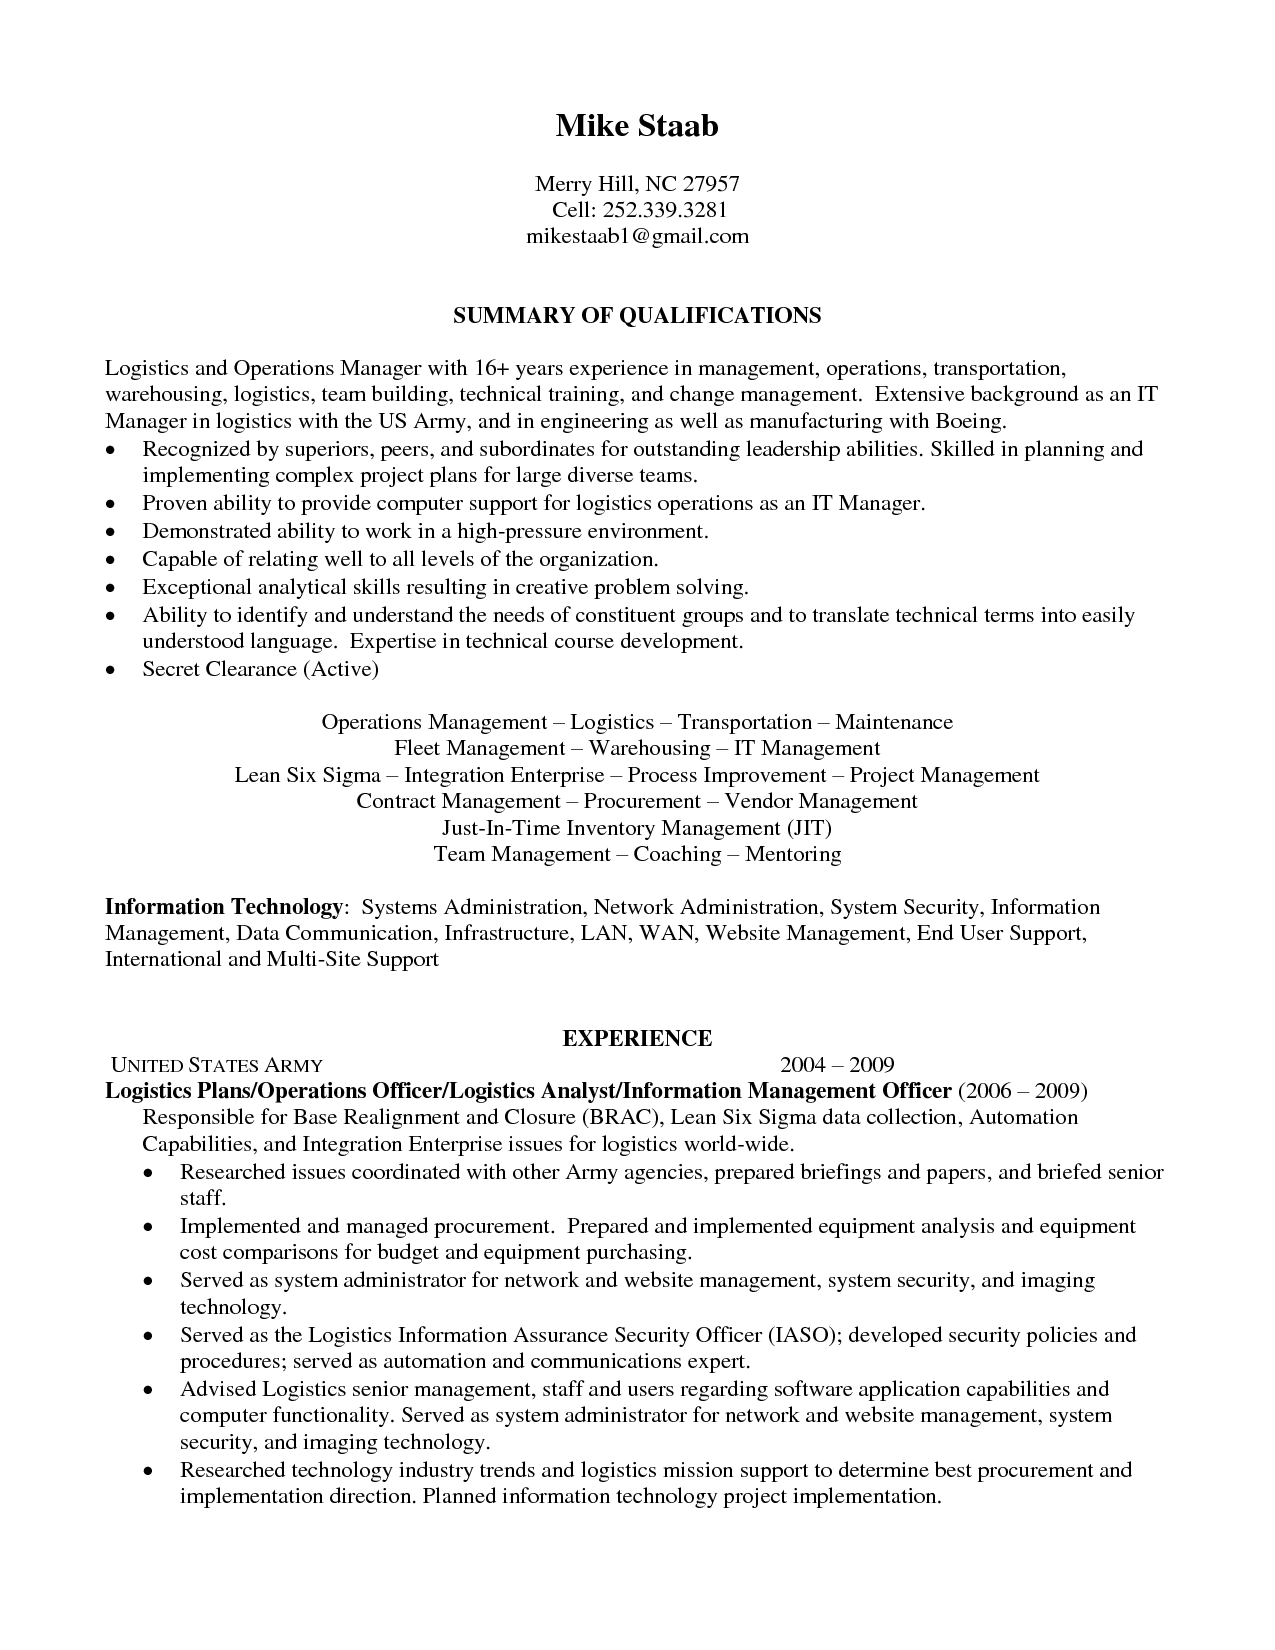 Senior Logistic Management Resume | Operations Logistics Manager In Raleigh  NC Resume Mike Staab